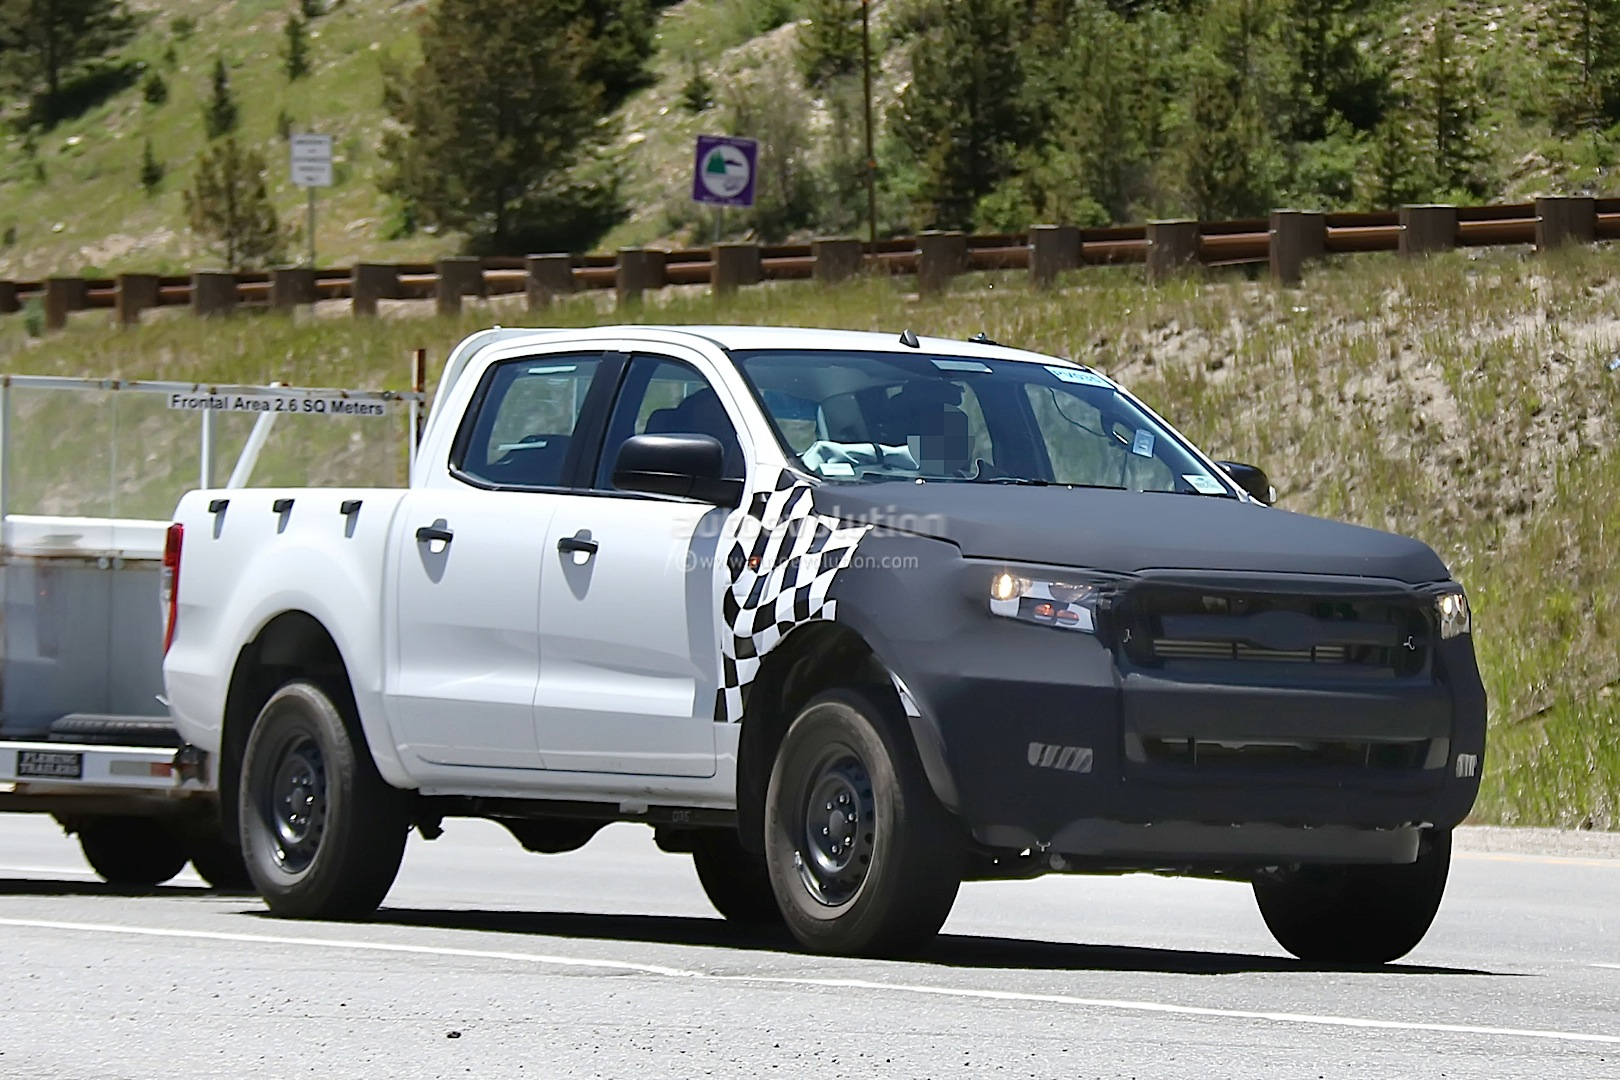 2015 Ford Ranger Towing A Trailer